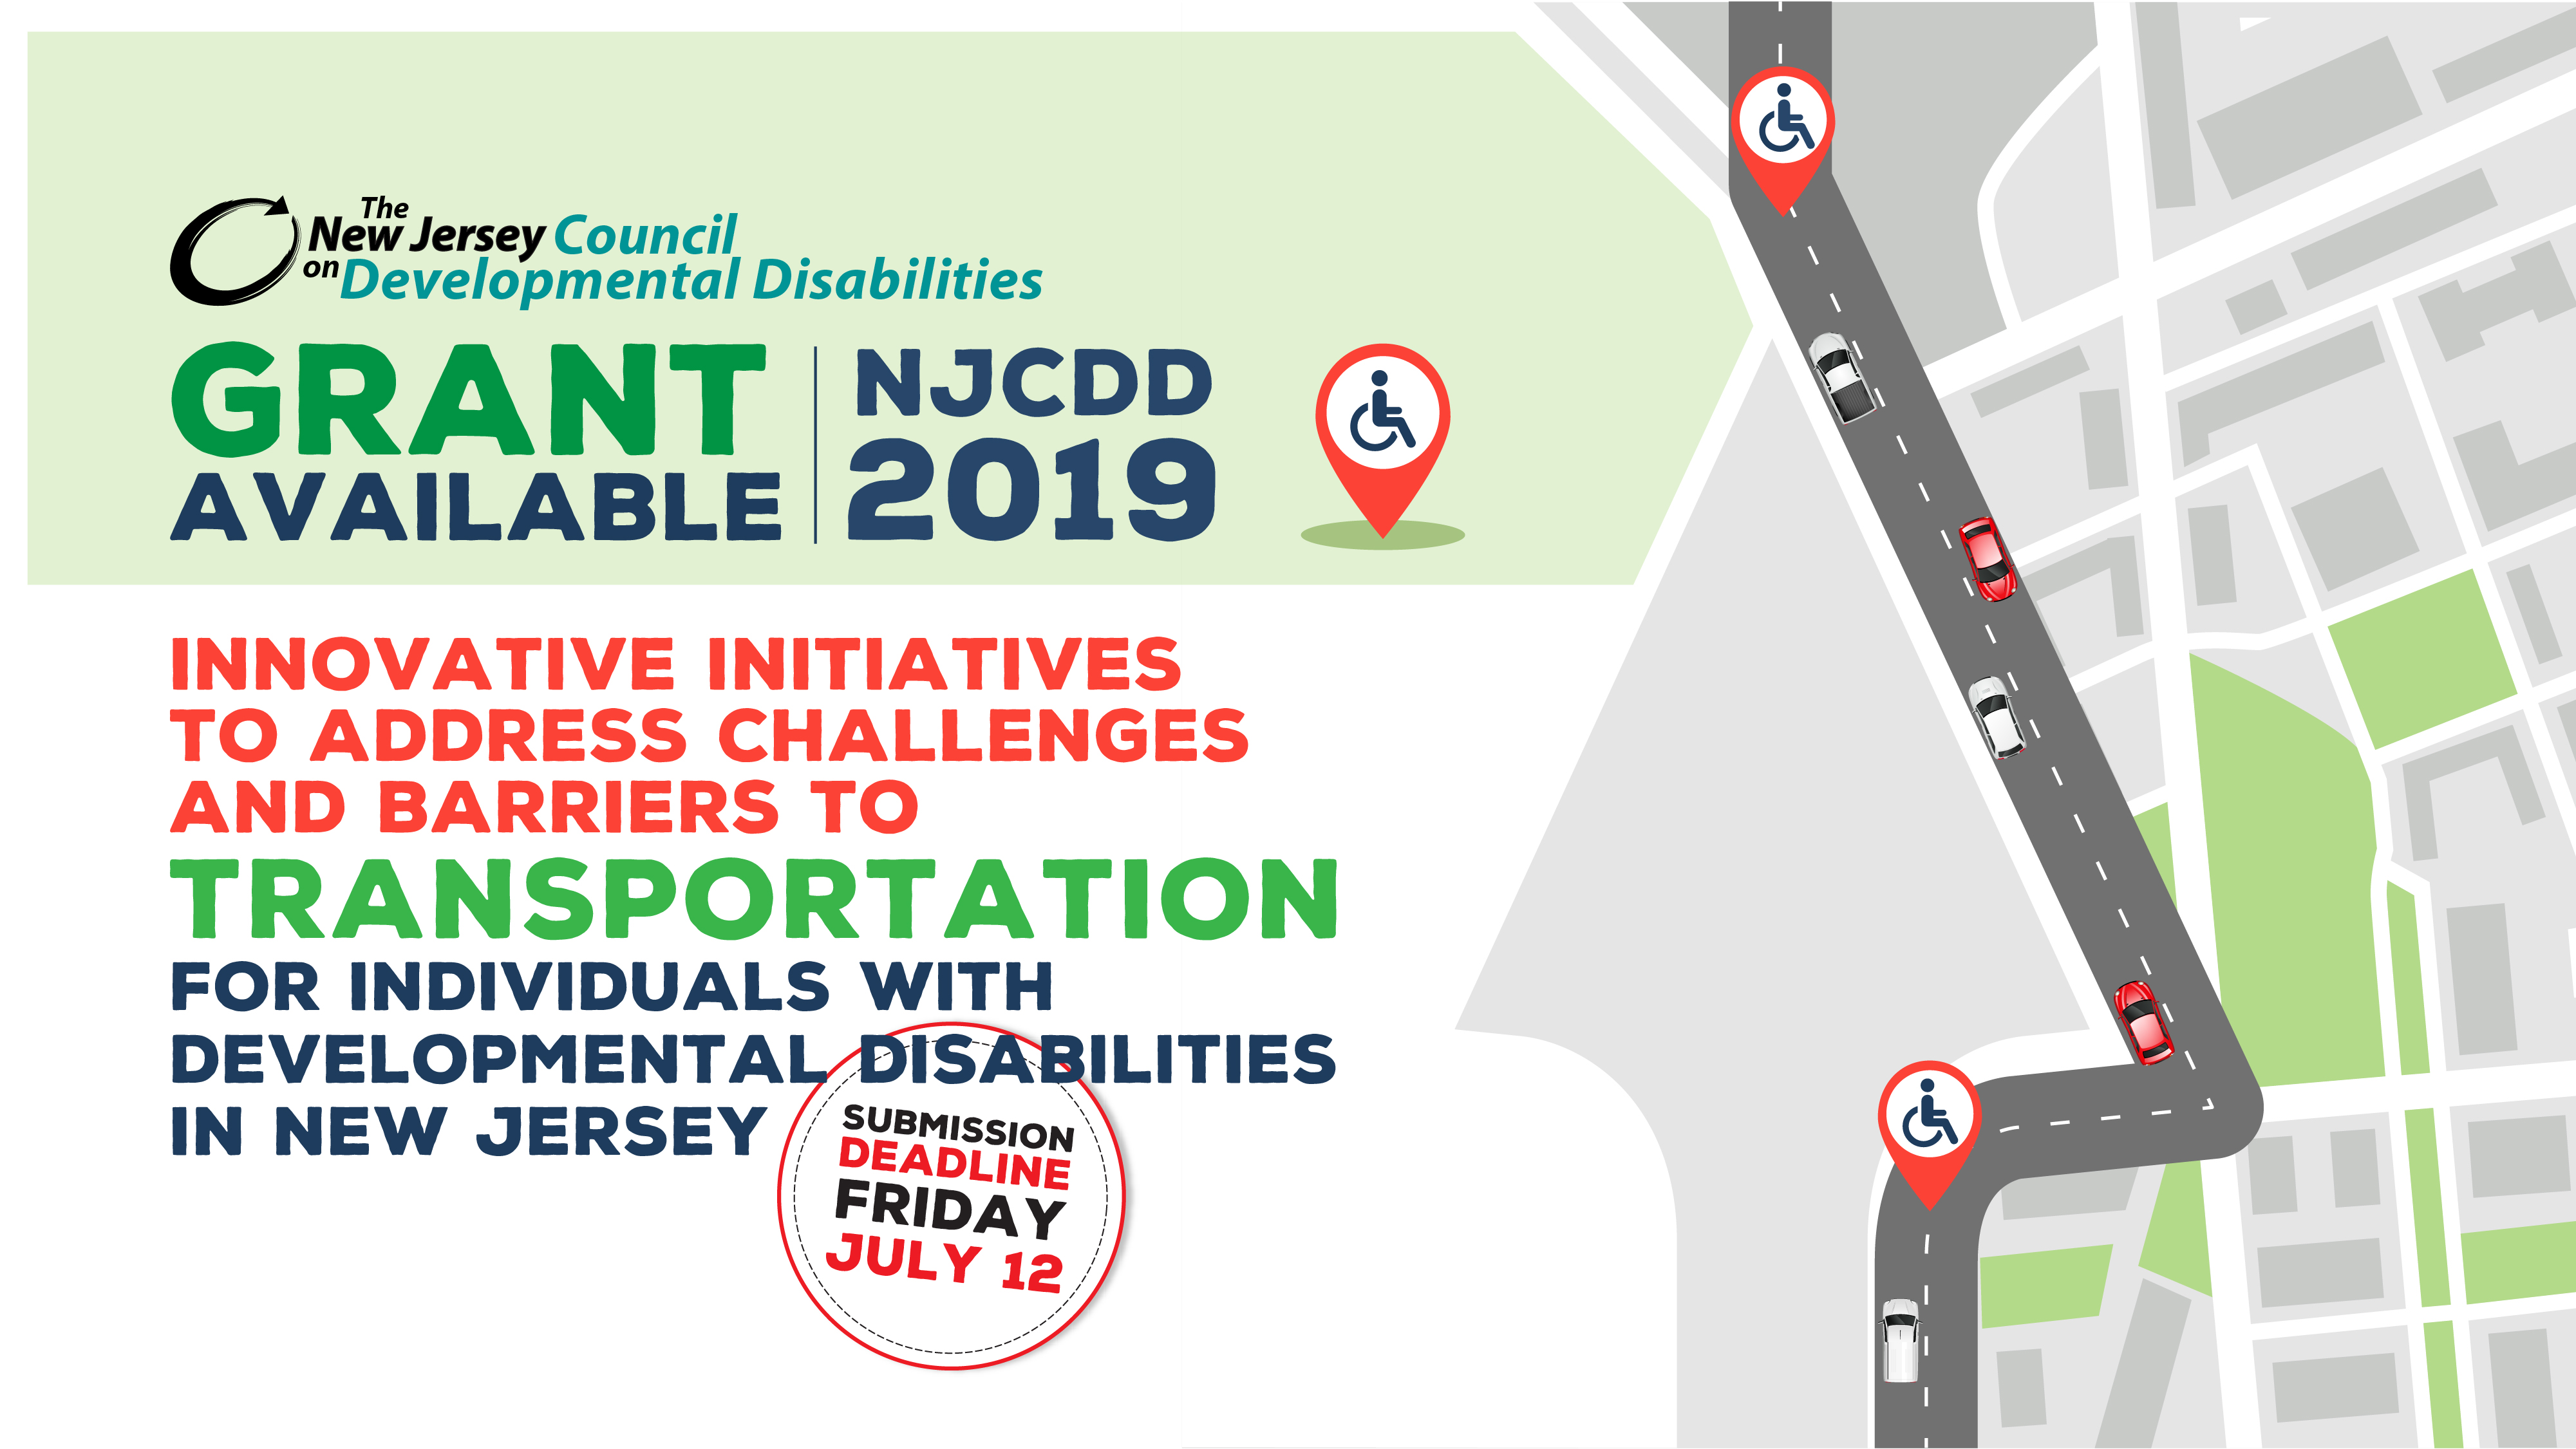 NJCDD Grant Available NJCDD 2019 innovative initiatives to address challenges and barriers to transportation for individuals with developmental disabilities in New Jersey Submission Deadline Friday, July 12